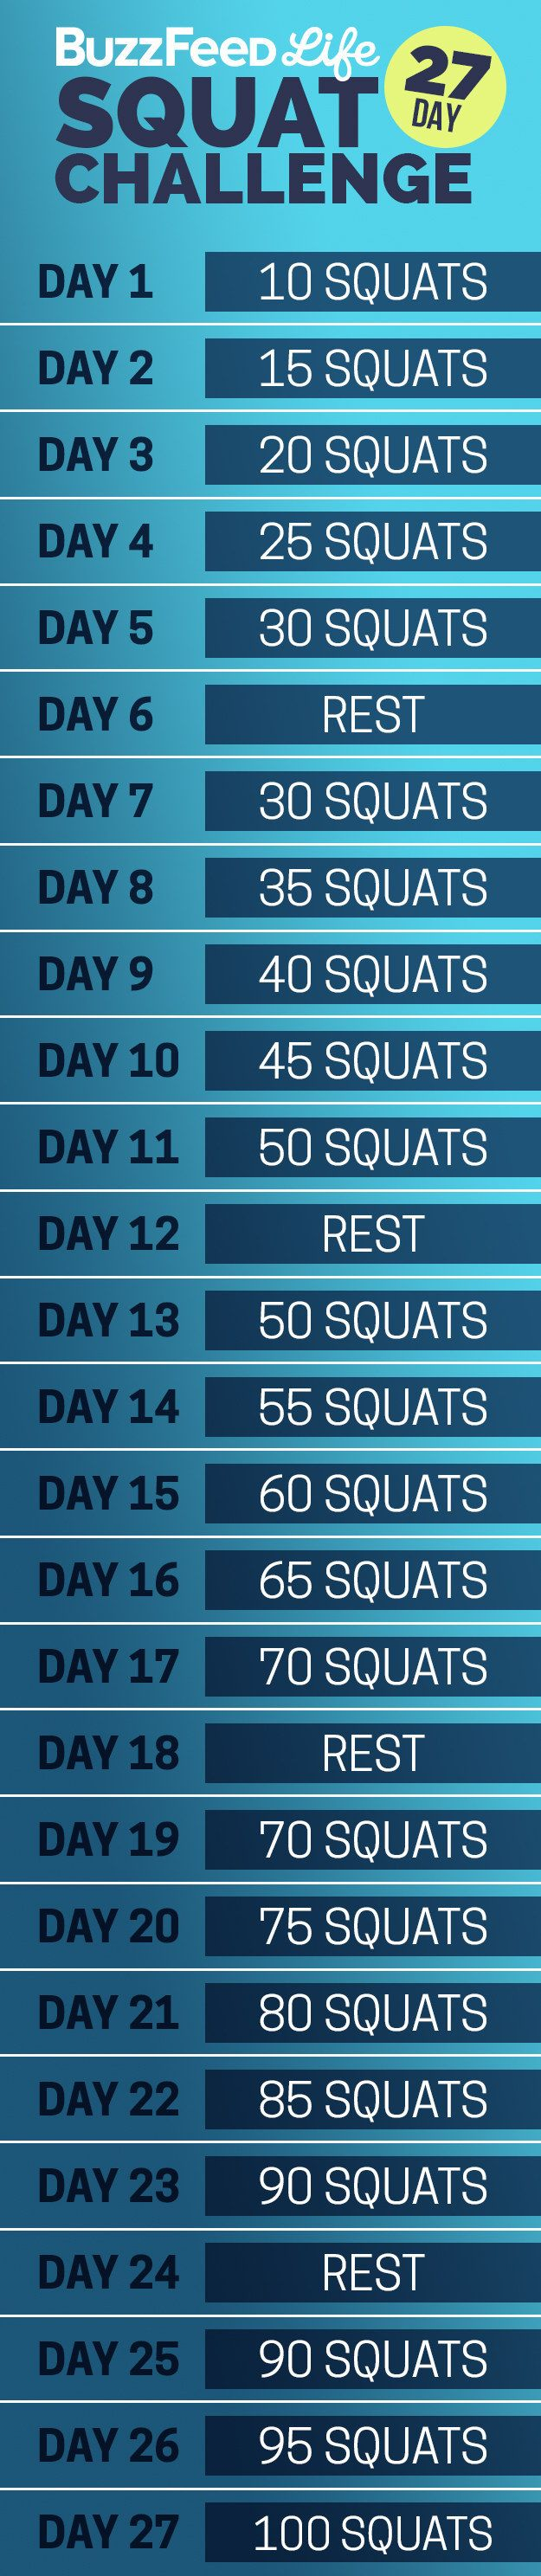 Here's your daily squat schedule: | Take BuzzFeed's 27-Day Squat Challenge, Have The Best Summer Of Your Life